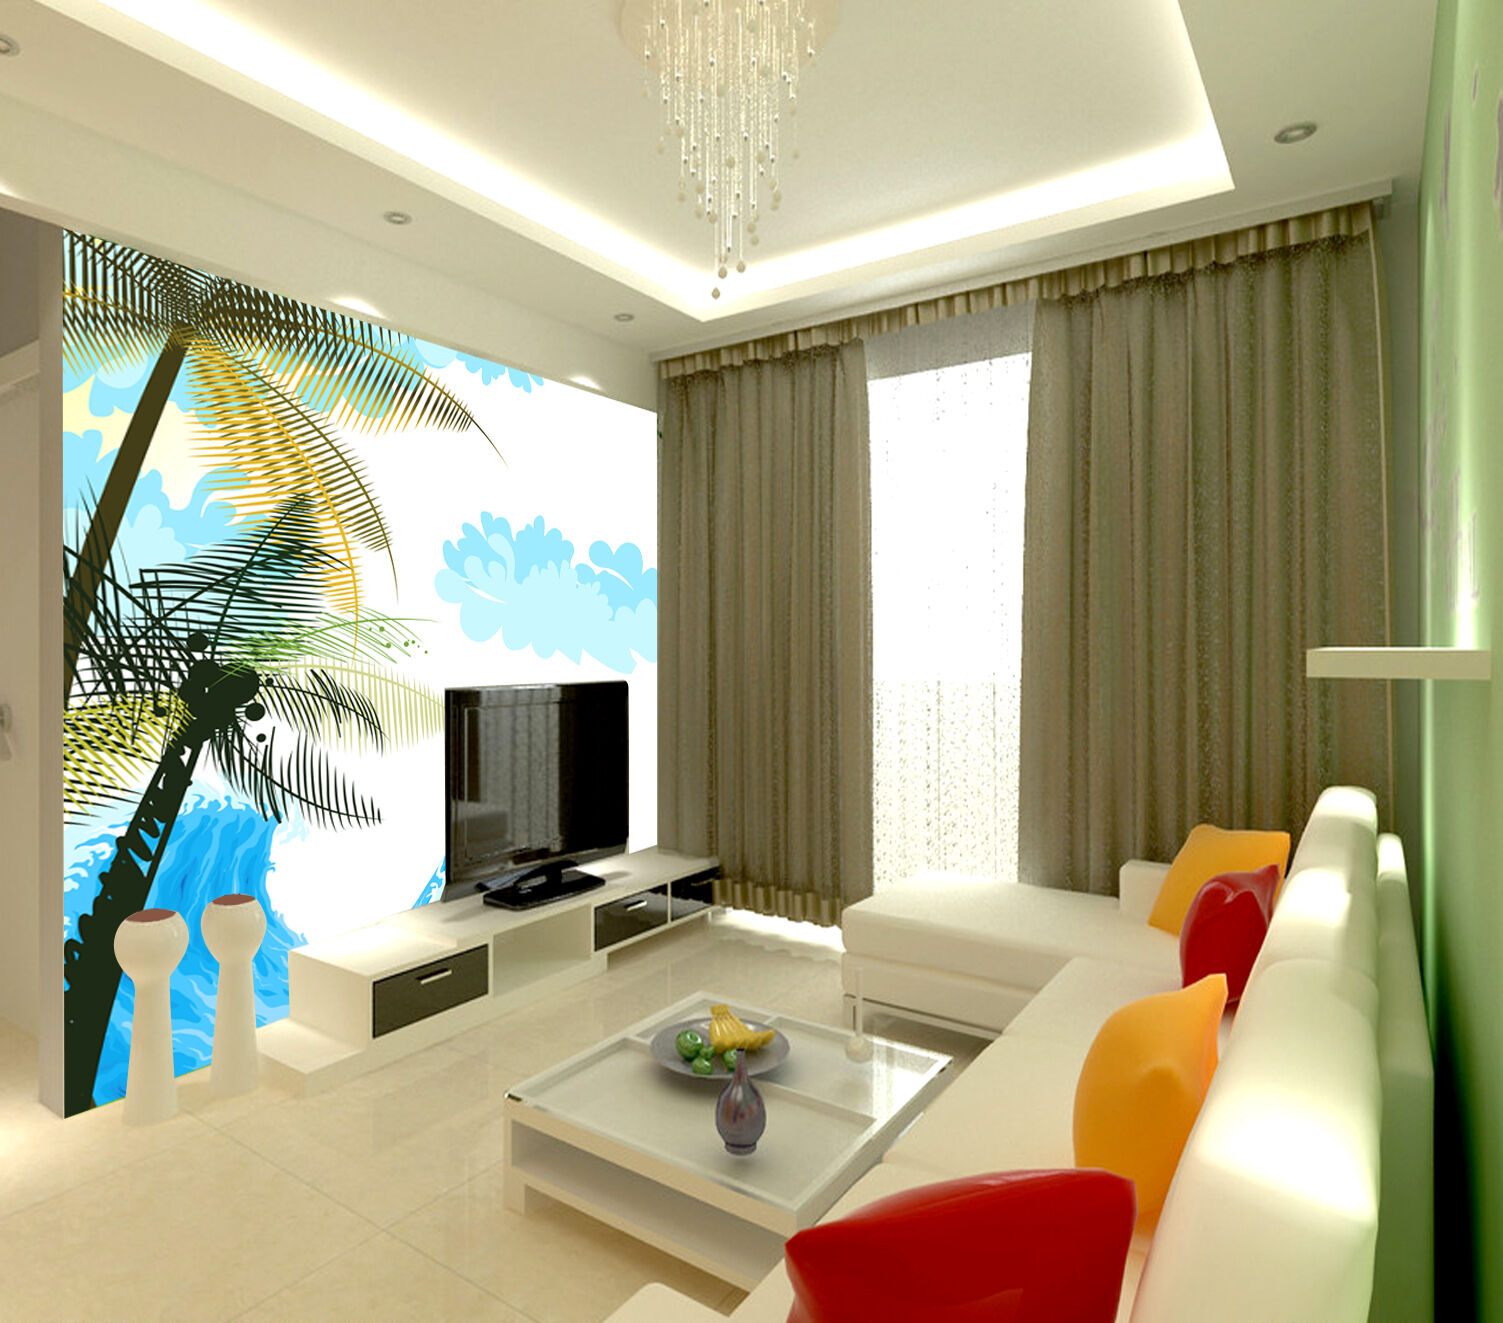 3D Simple sea palm 5 WallPaper Murals Wall Print Decal Wall Deco AJ WALLPAPER